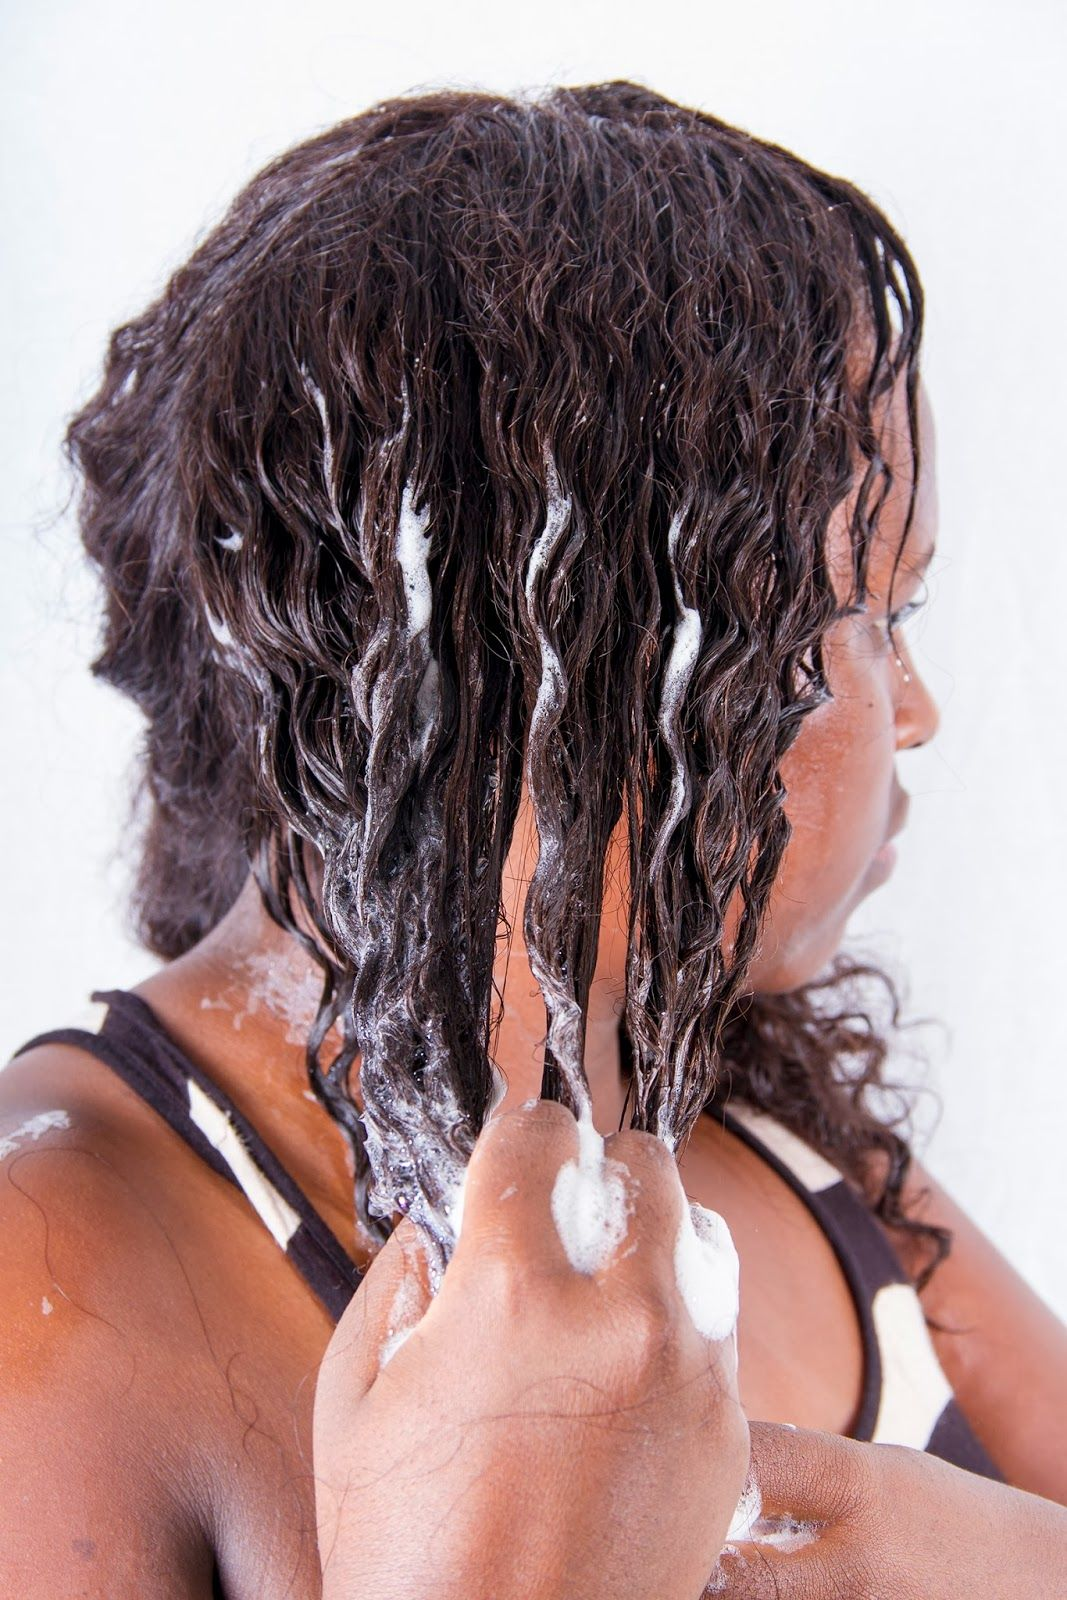 Nairobis Fashion Geek My Curly Weave Washing And Maintenance